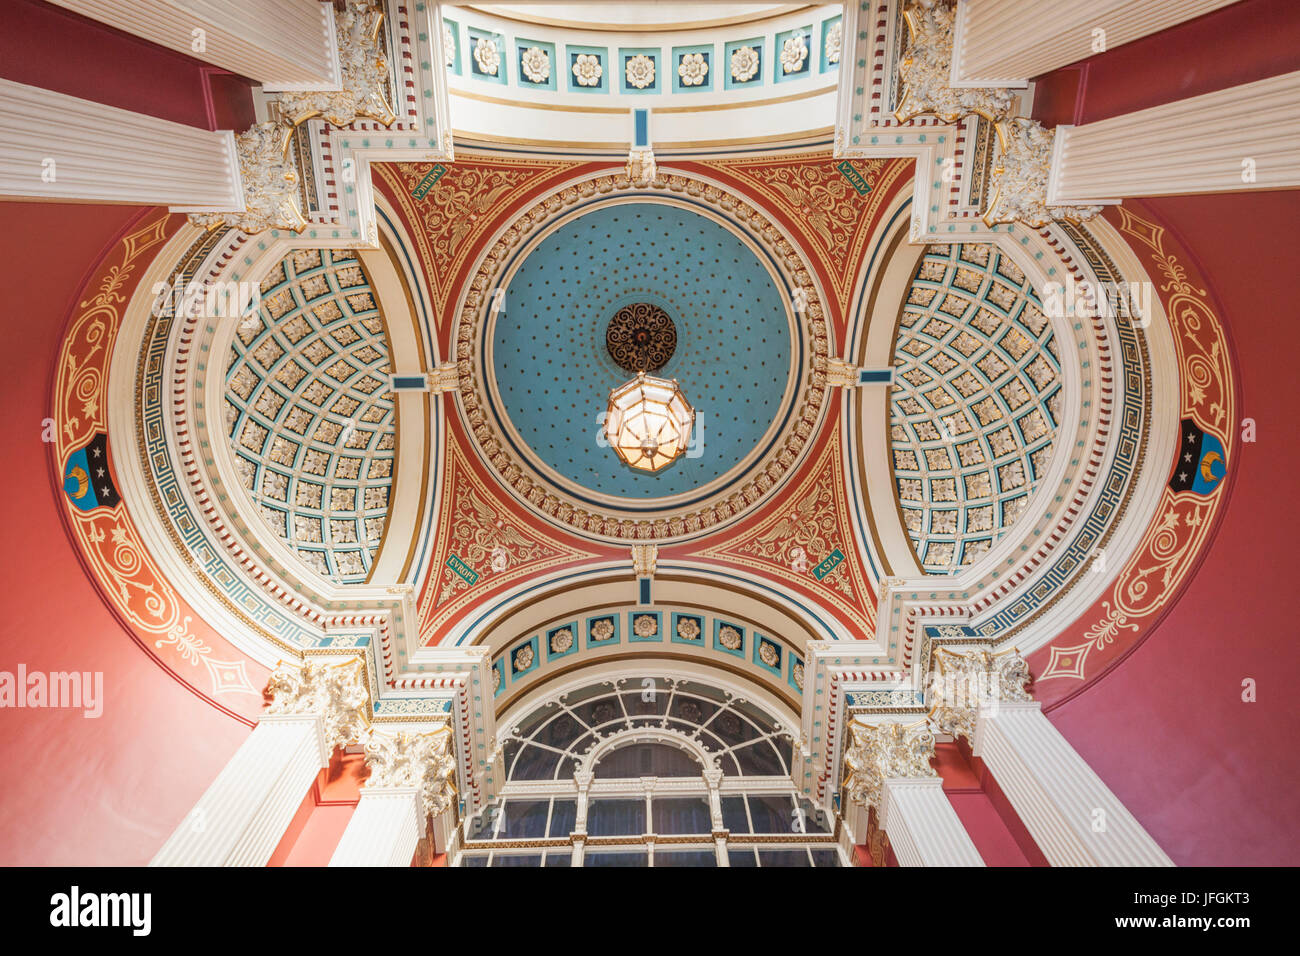 England, Yorkshire, Leeds, Leeds Town Hall, The Domed Foyer - Stock Image